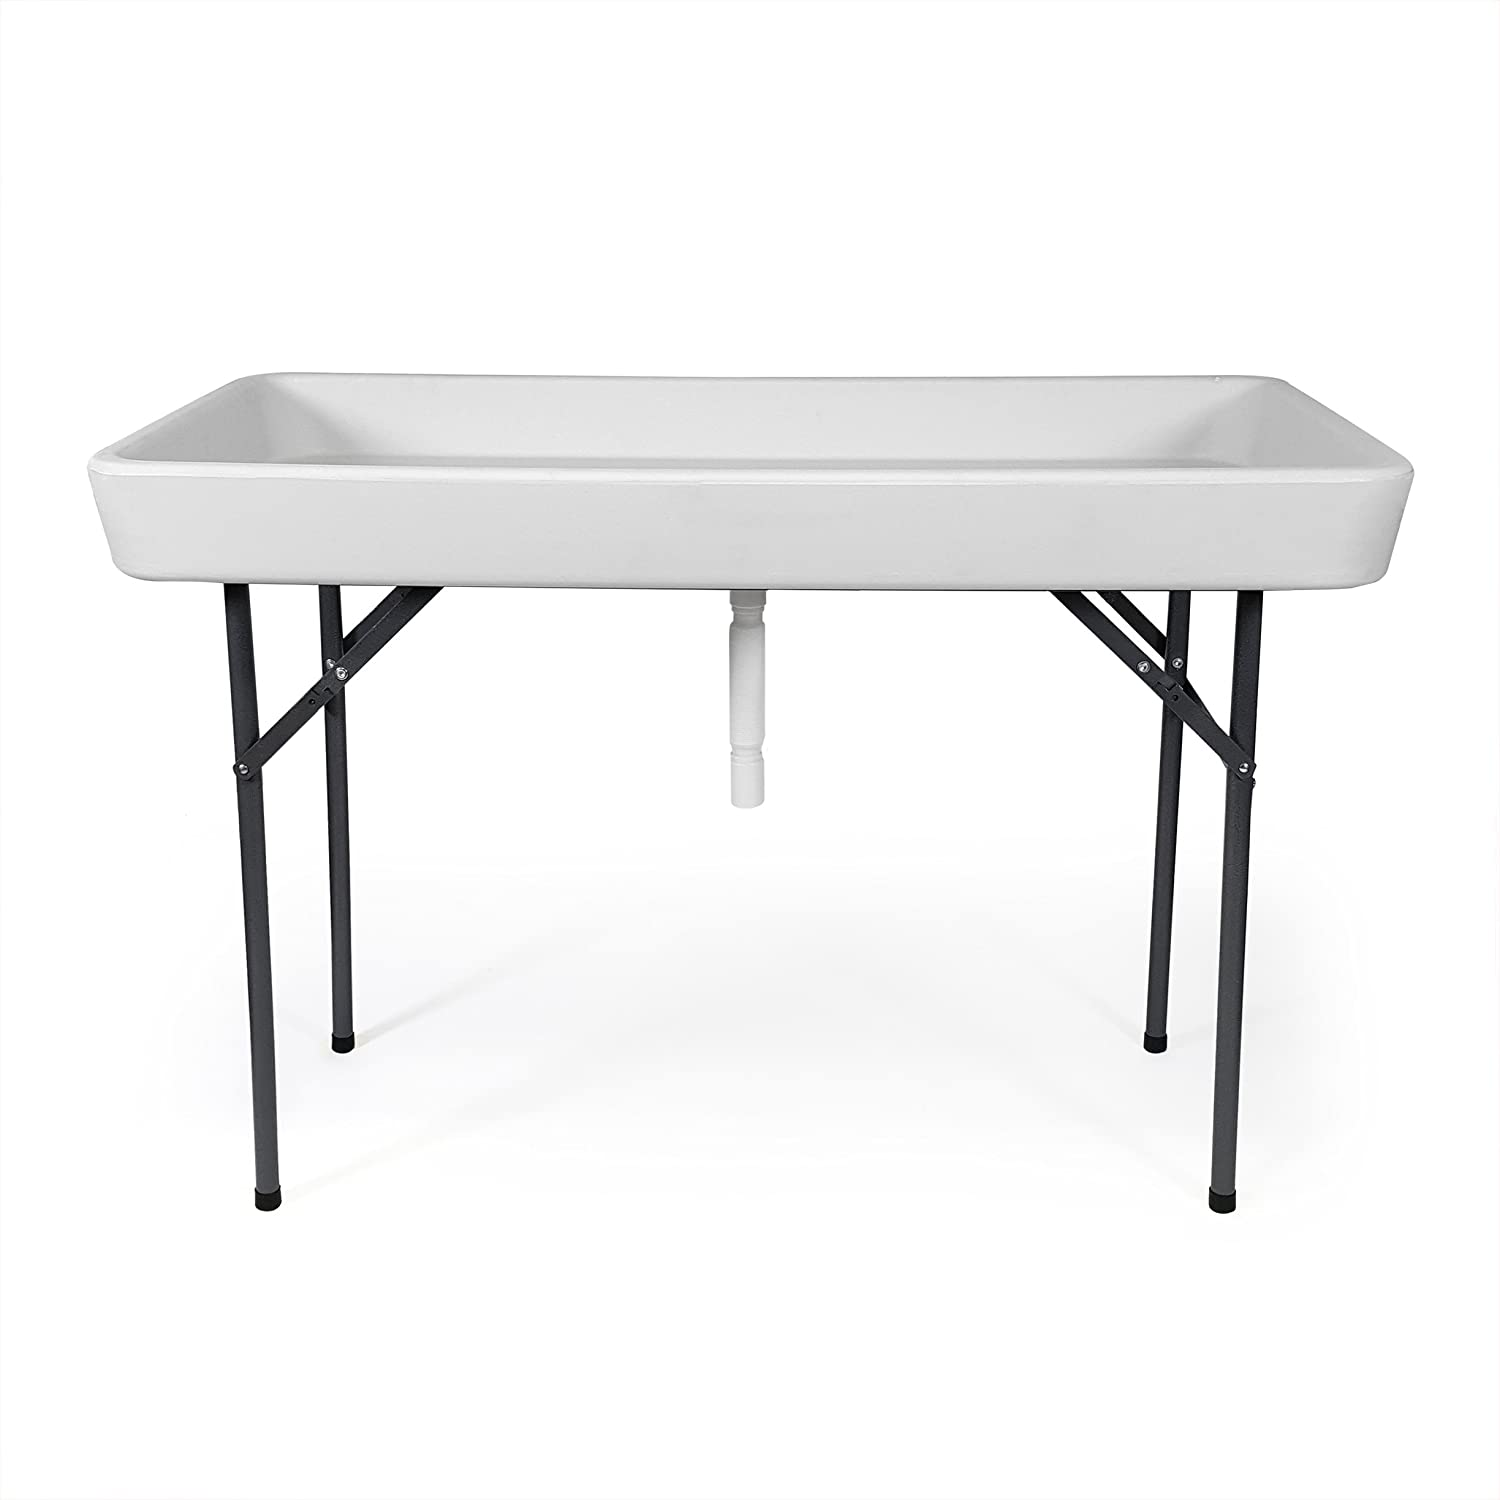 6 Foot Cooler Ice Table Party Ice Folding Table with Matching Skirt – White